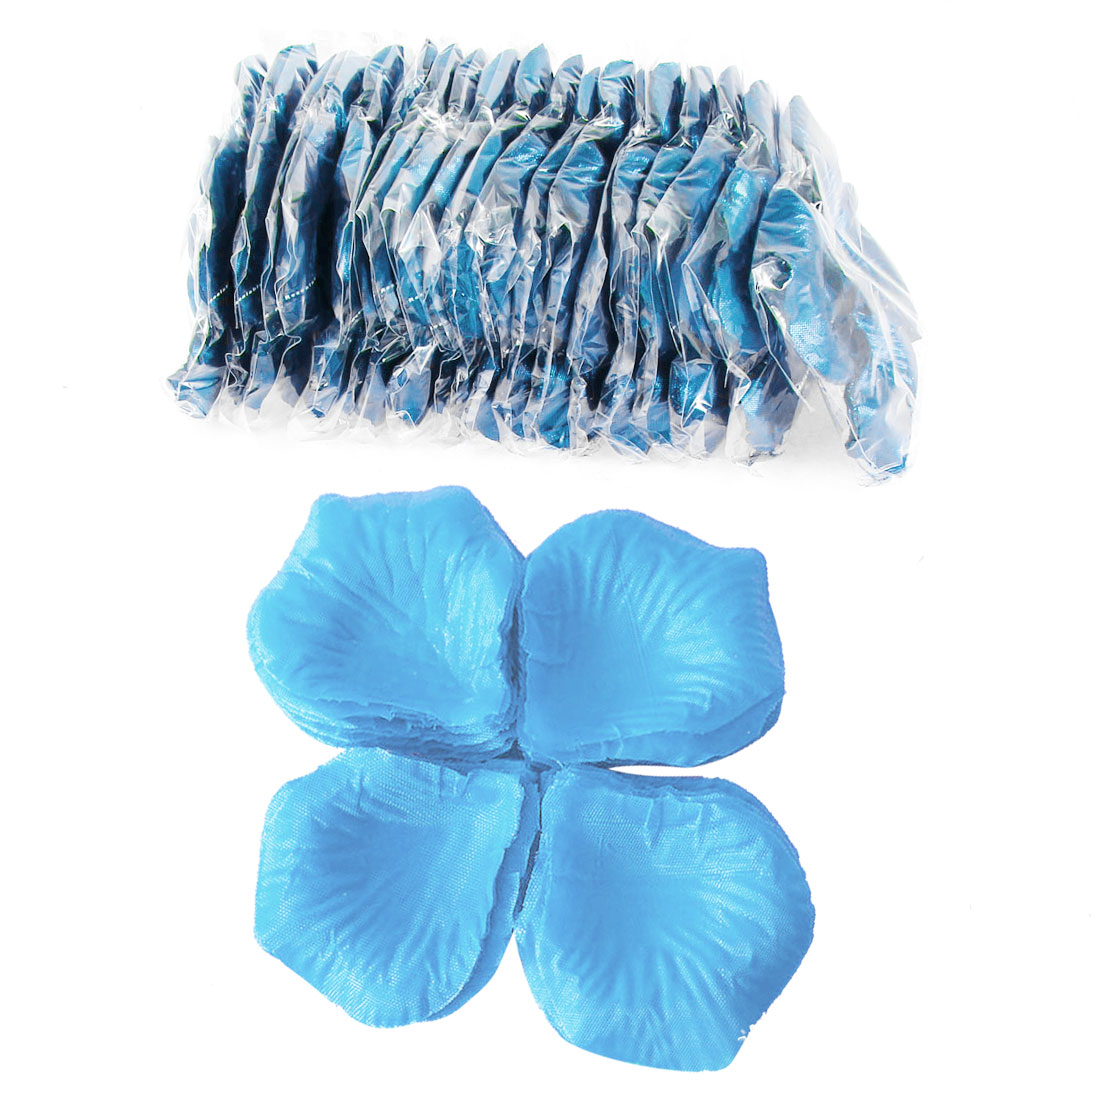 2000 Pcs Light Blue Artificial Silk Flower Rose Petals Wedding Bridal Party Decorations